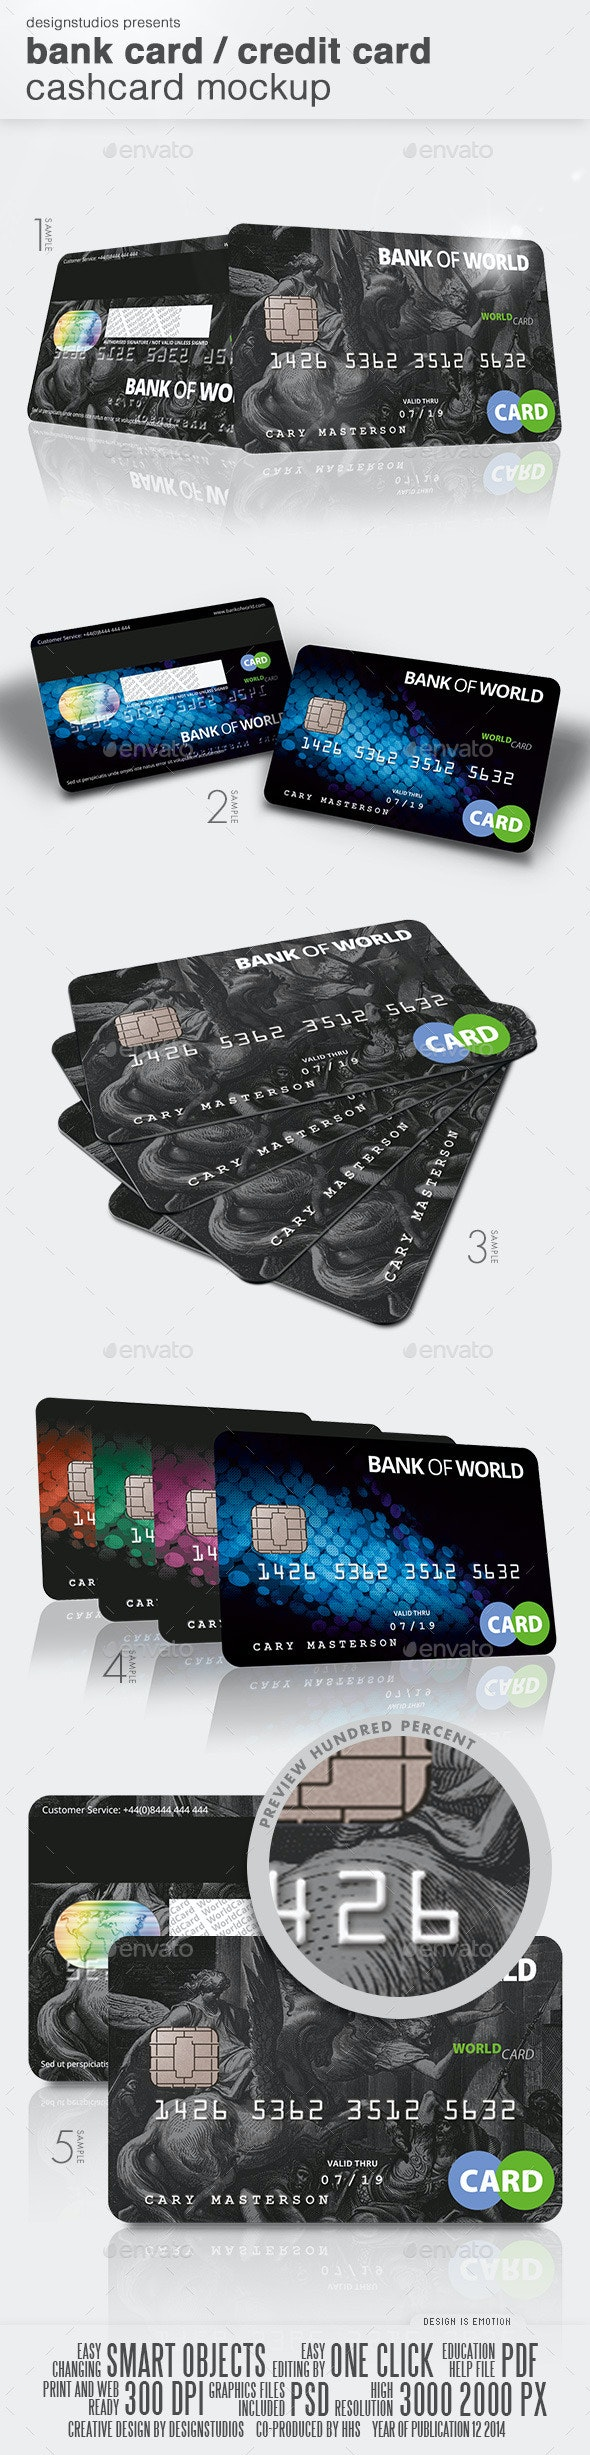 Bank Card / Credit Card CashCard Mock-Up - Product Mock-Ups Graphics